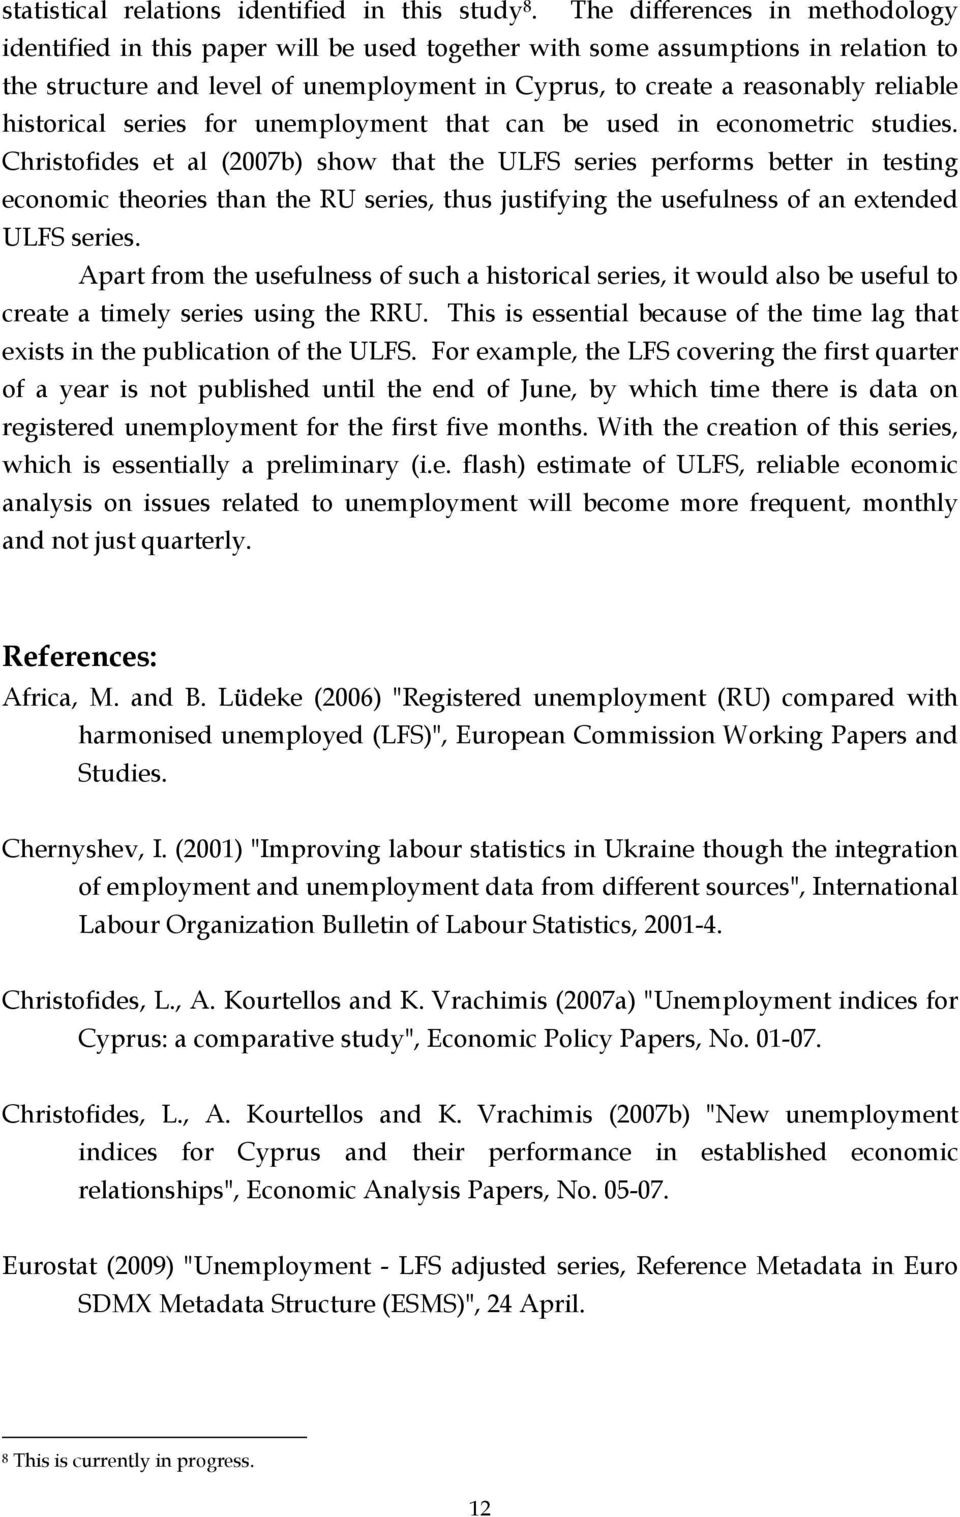 historical series for unemployment that can be used in econometric studies.